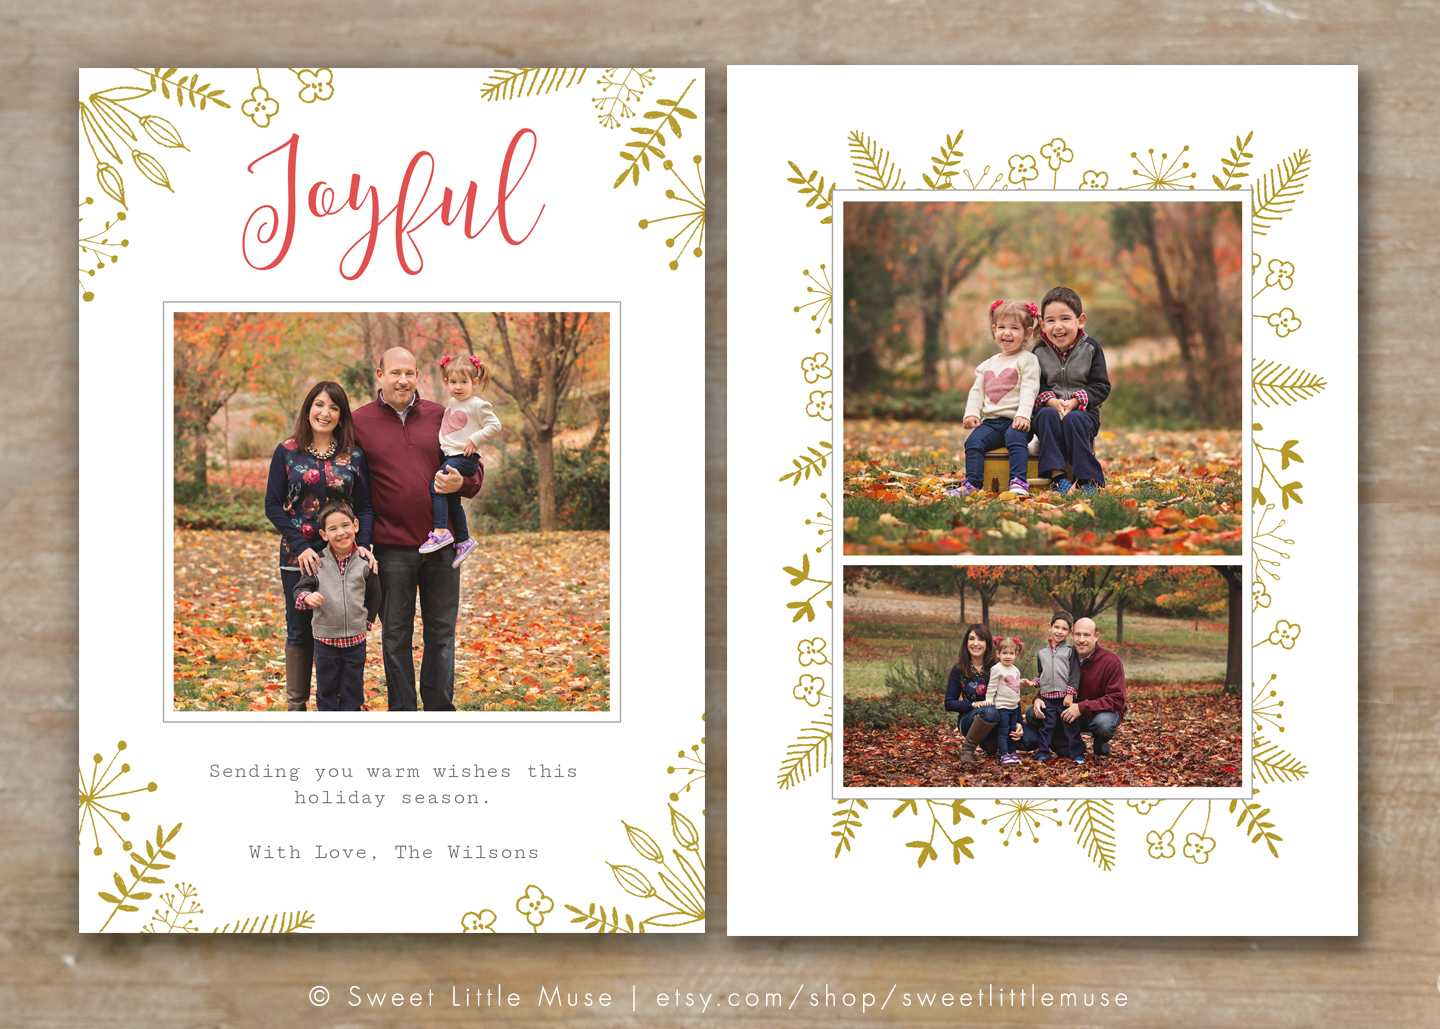 30 Holiday Card Templates For Photographers To Use This Year Inside Holiday Card Templates For Photographers